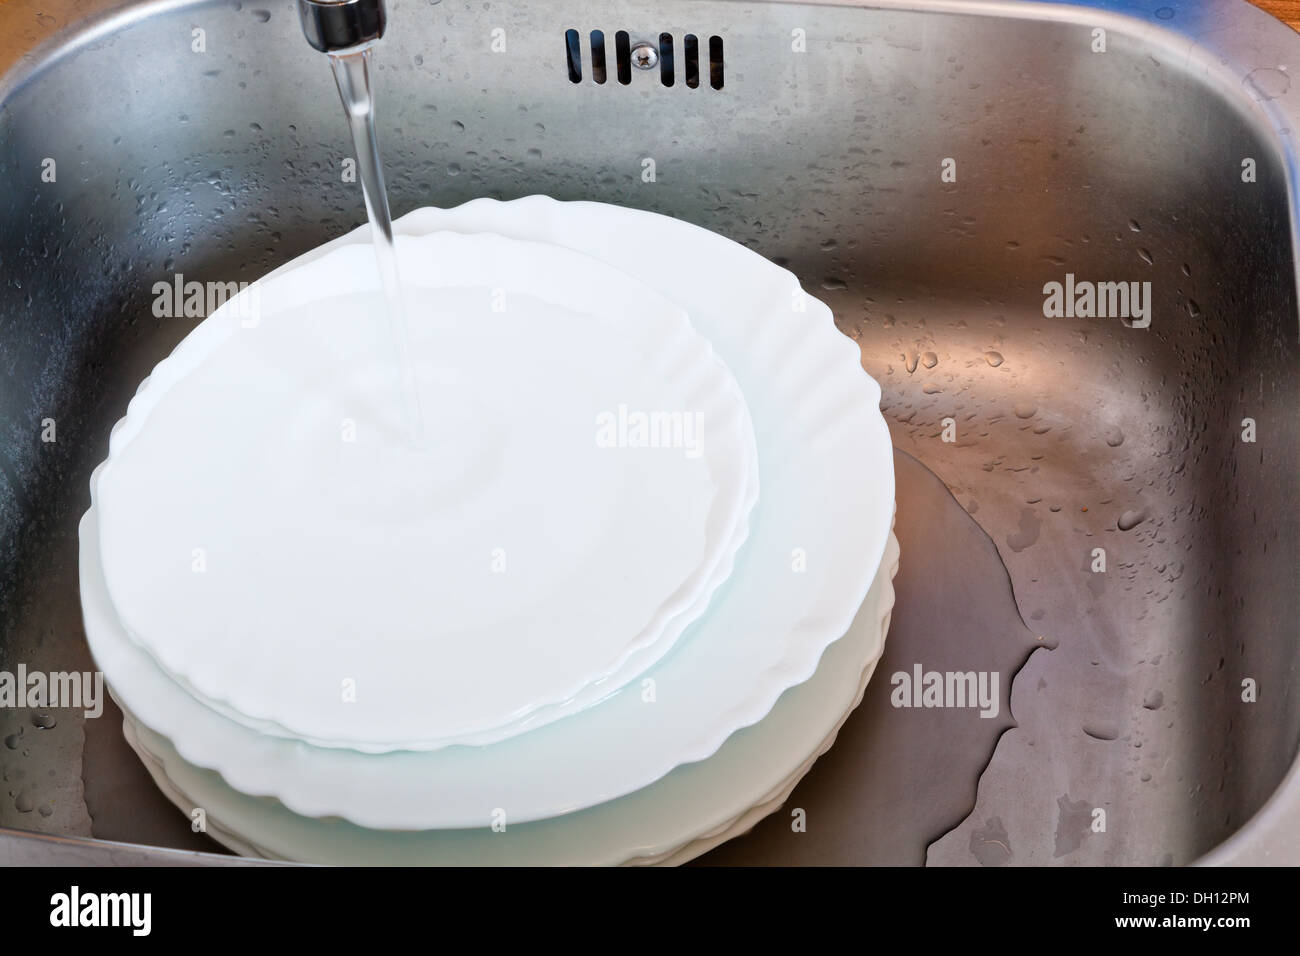 wash-up in metal sink for washing dishes - Stock Image